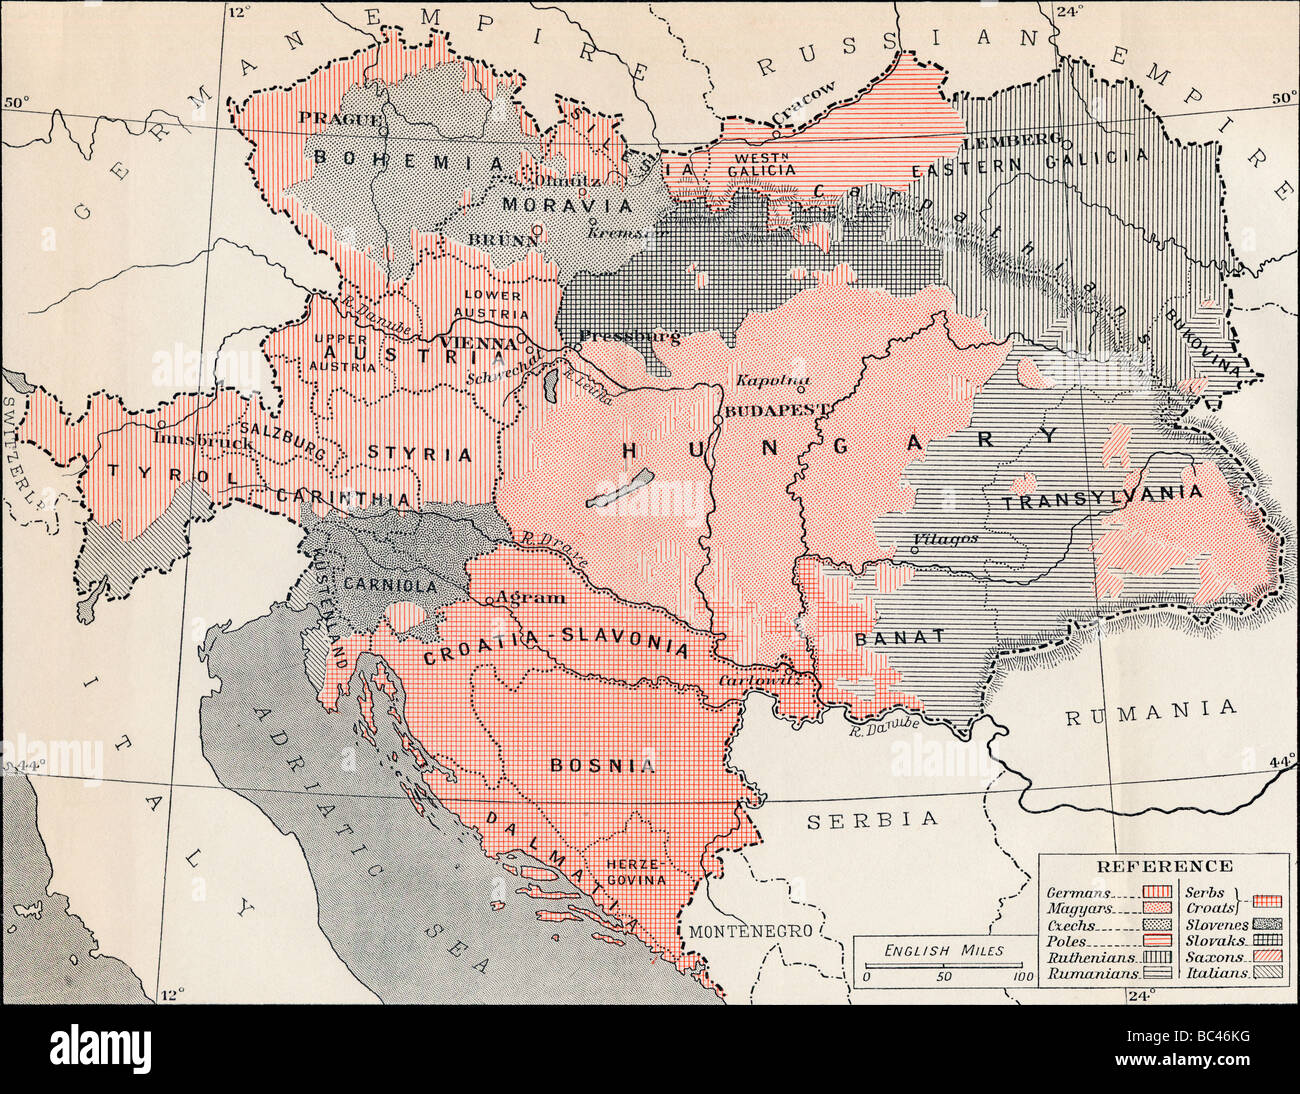 Map of Austria Hungary in 1878. - Stock Image